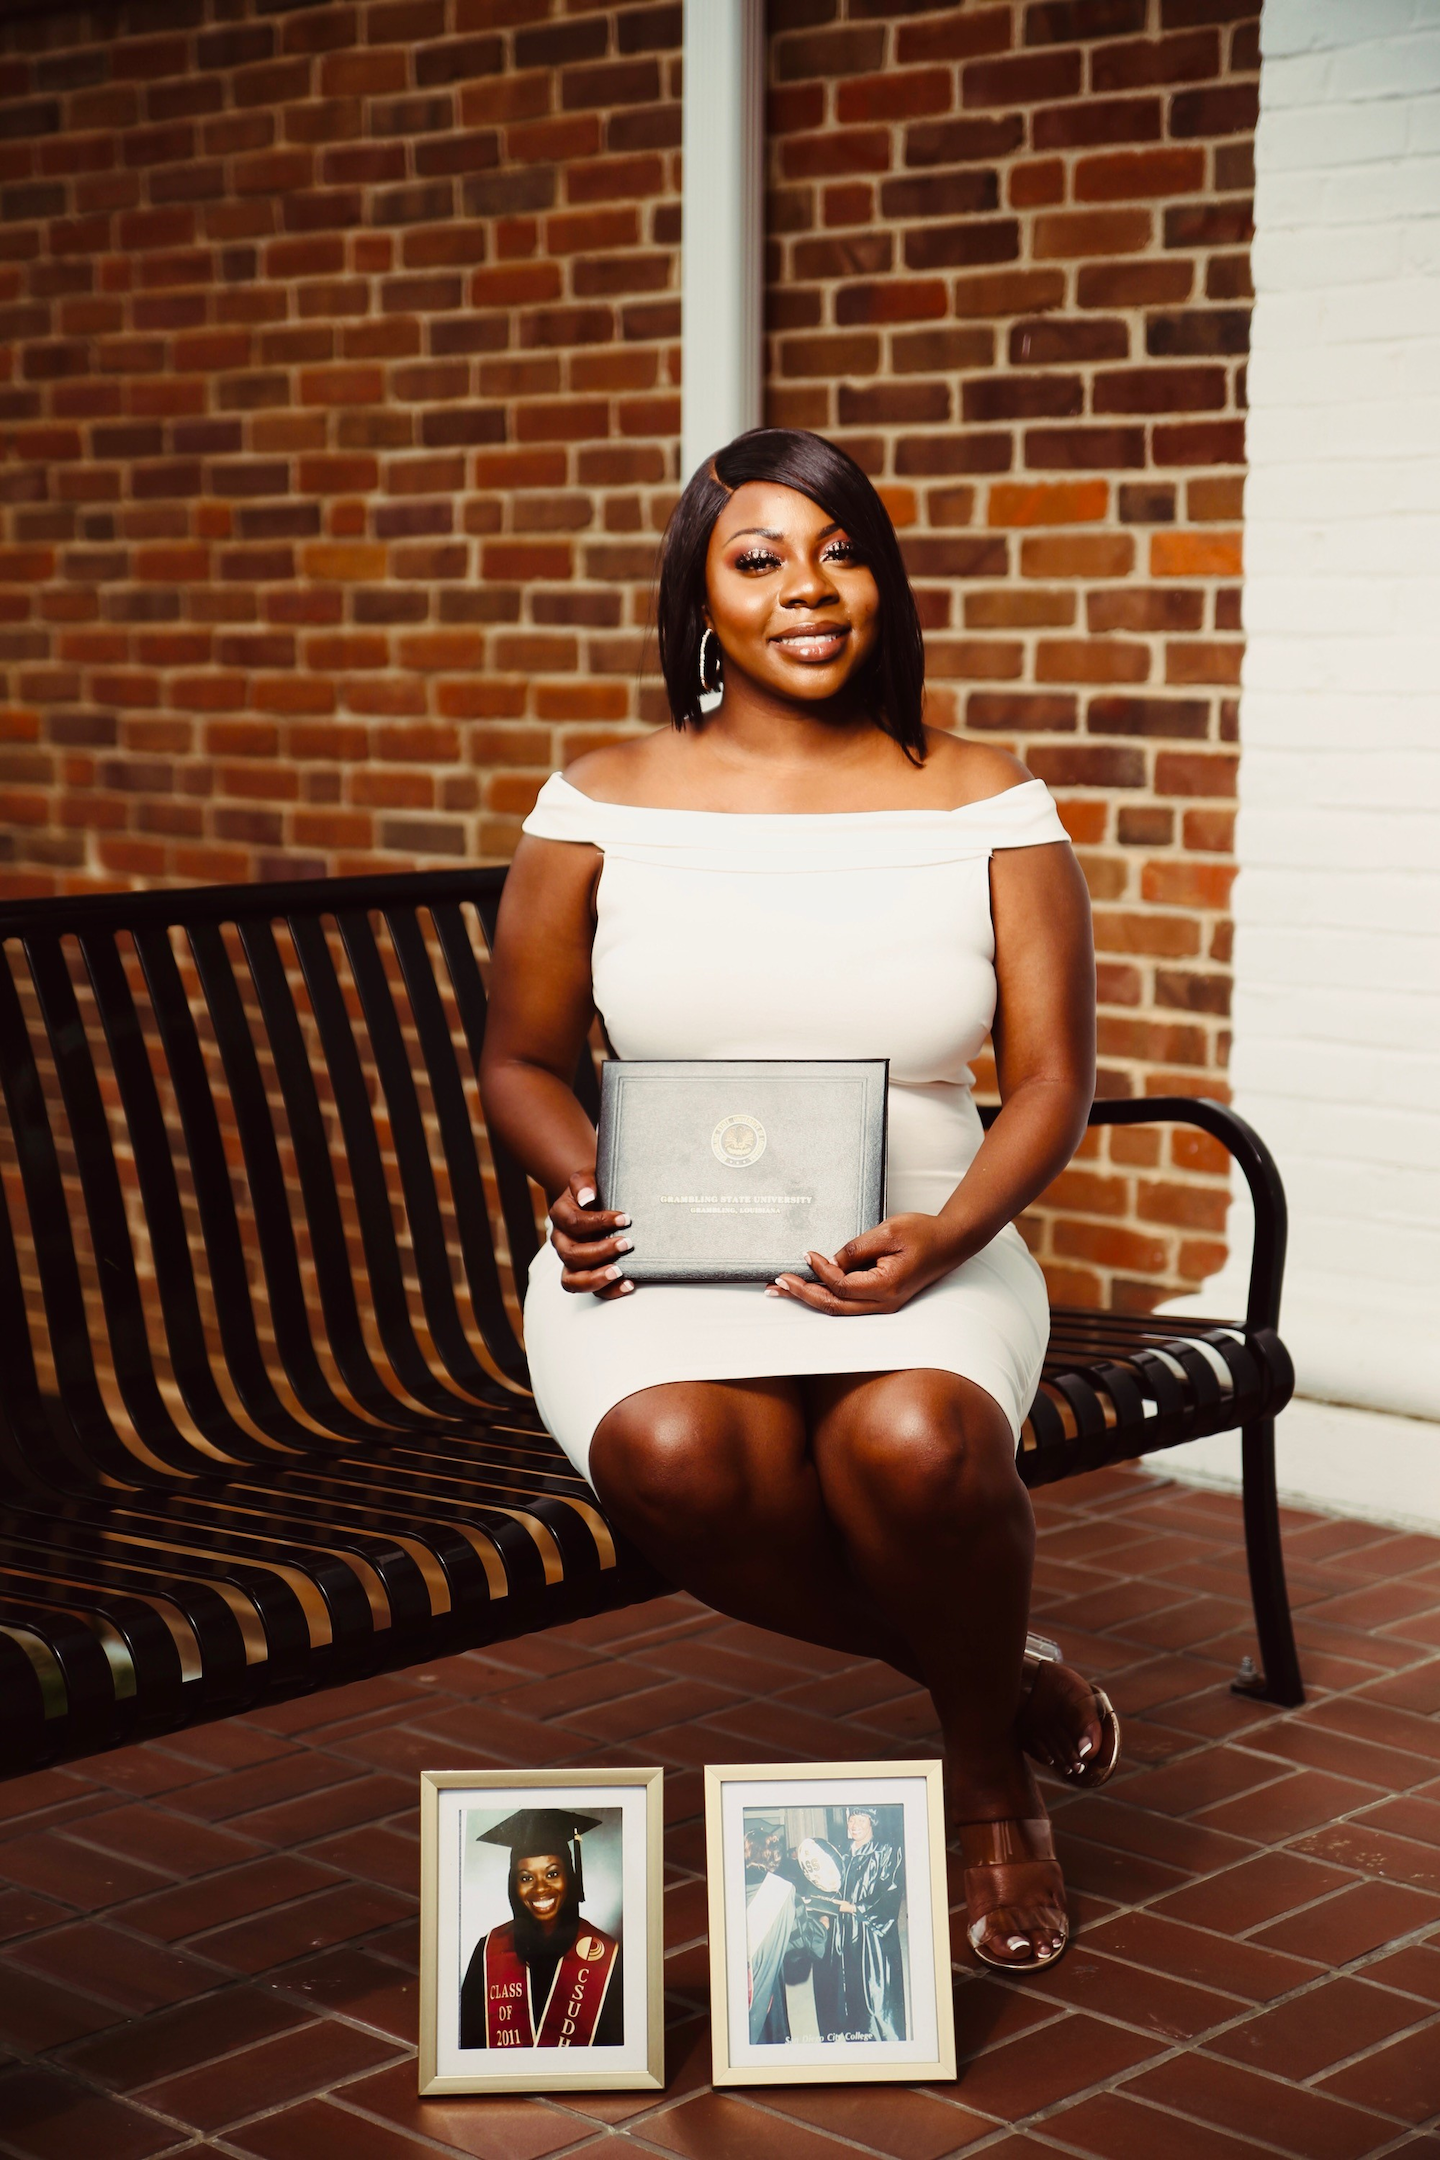 Ayeisha Gipson earned an associate degree from San Diego City College and a bachelor's degree from Grambling State University. Gipson will begin studying for her master's degree at Teacher's College of Columbia University this fall.